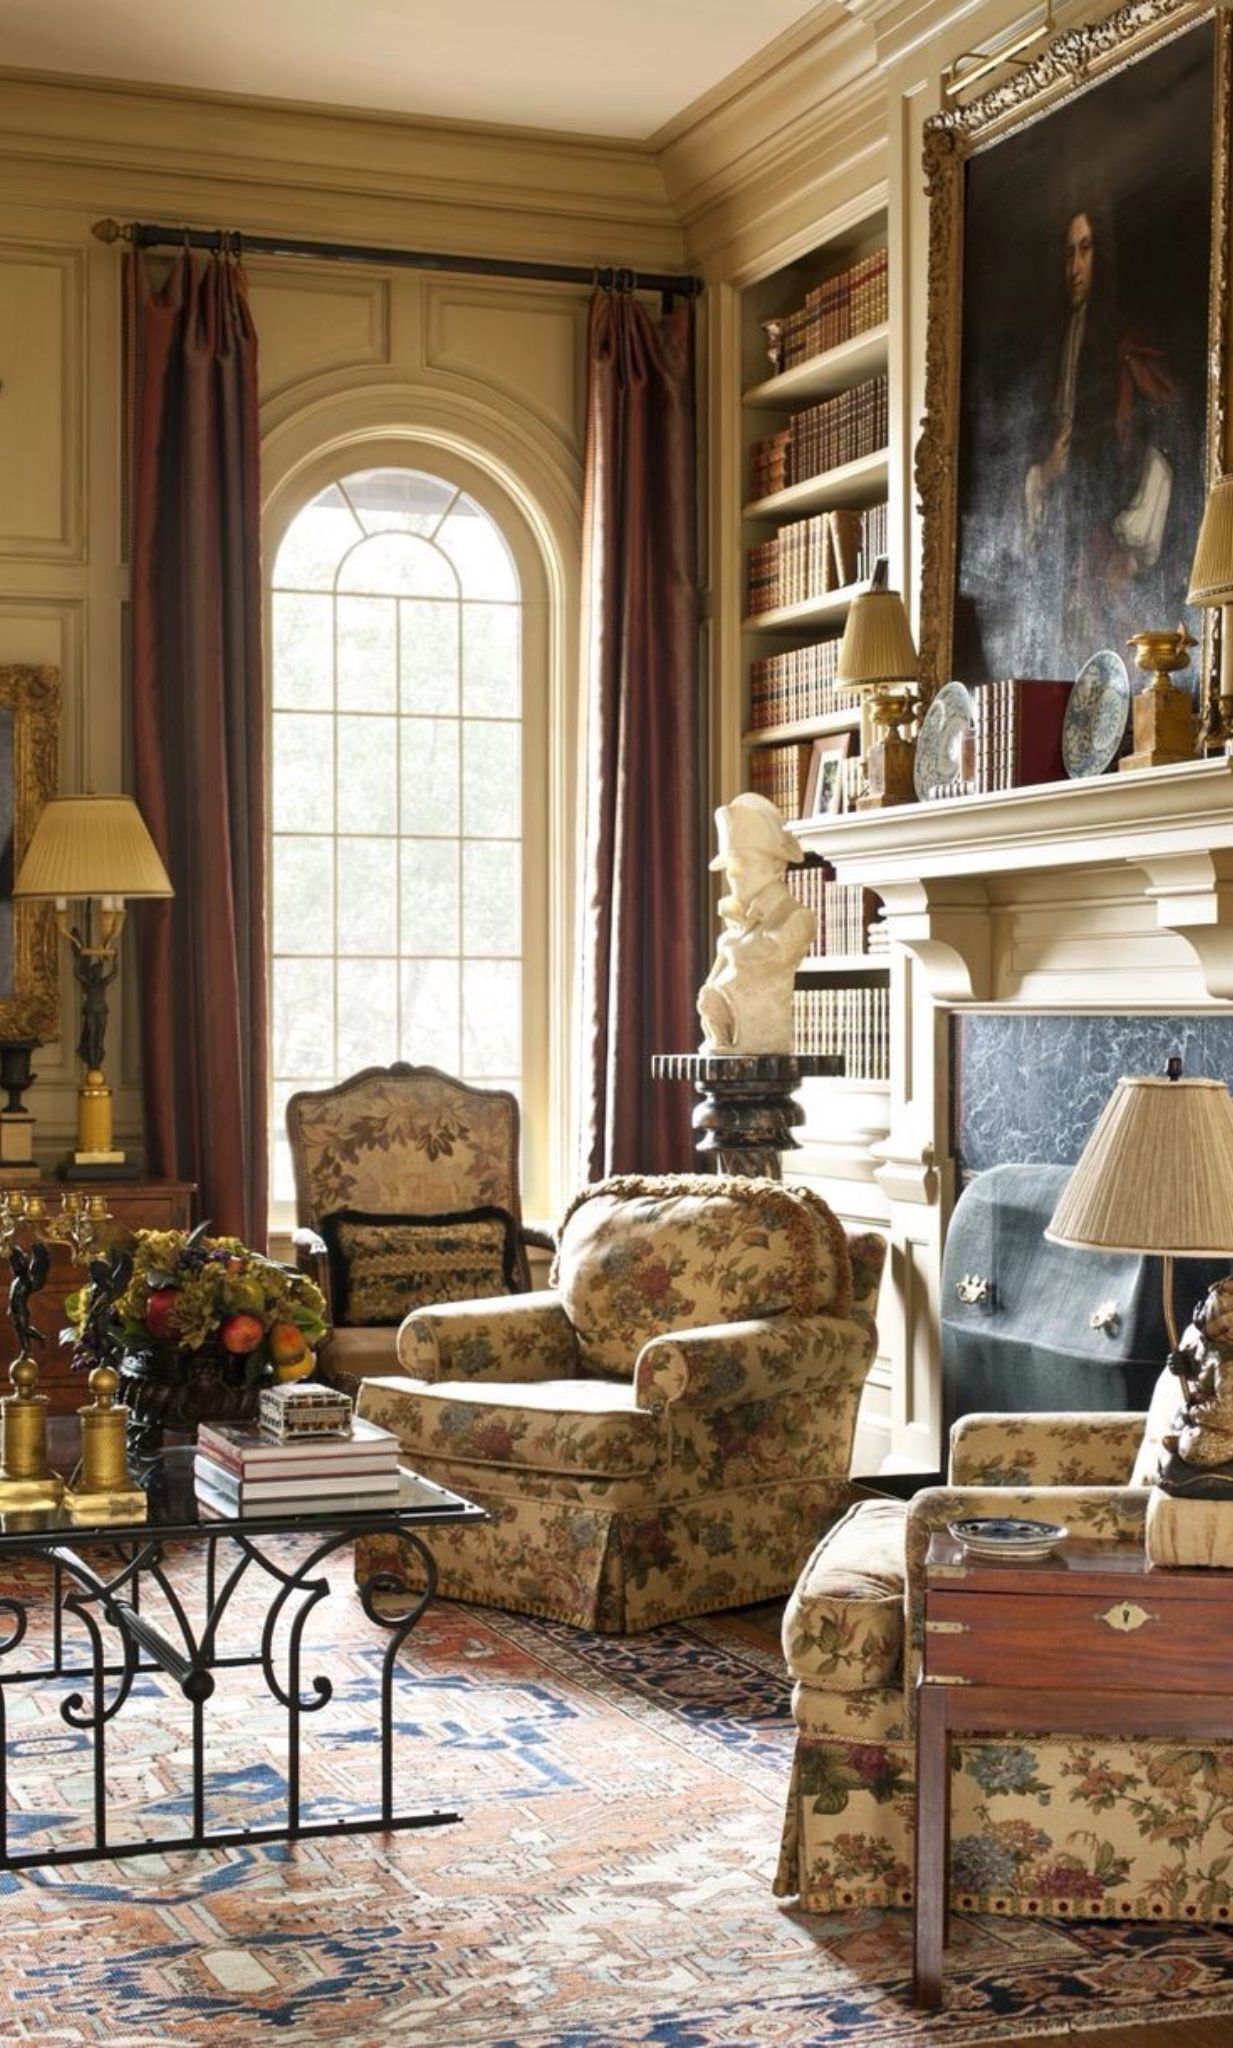 Style English Country In 2019: English Decor, English Country